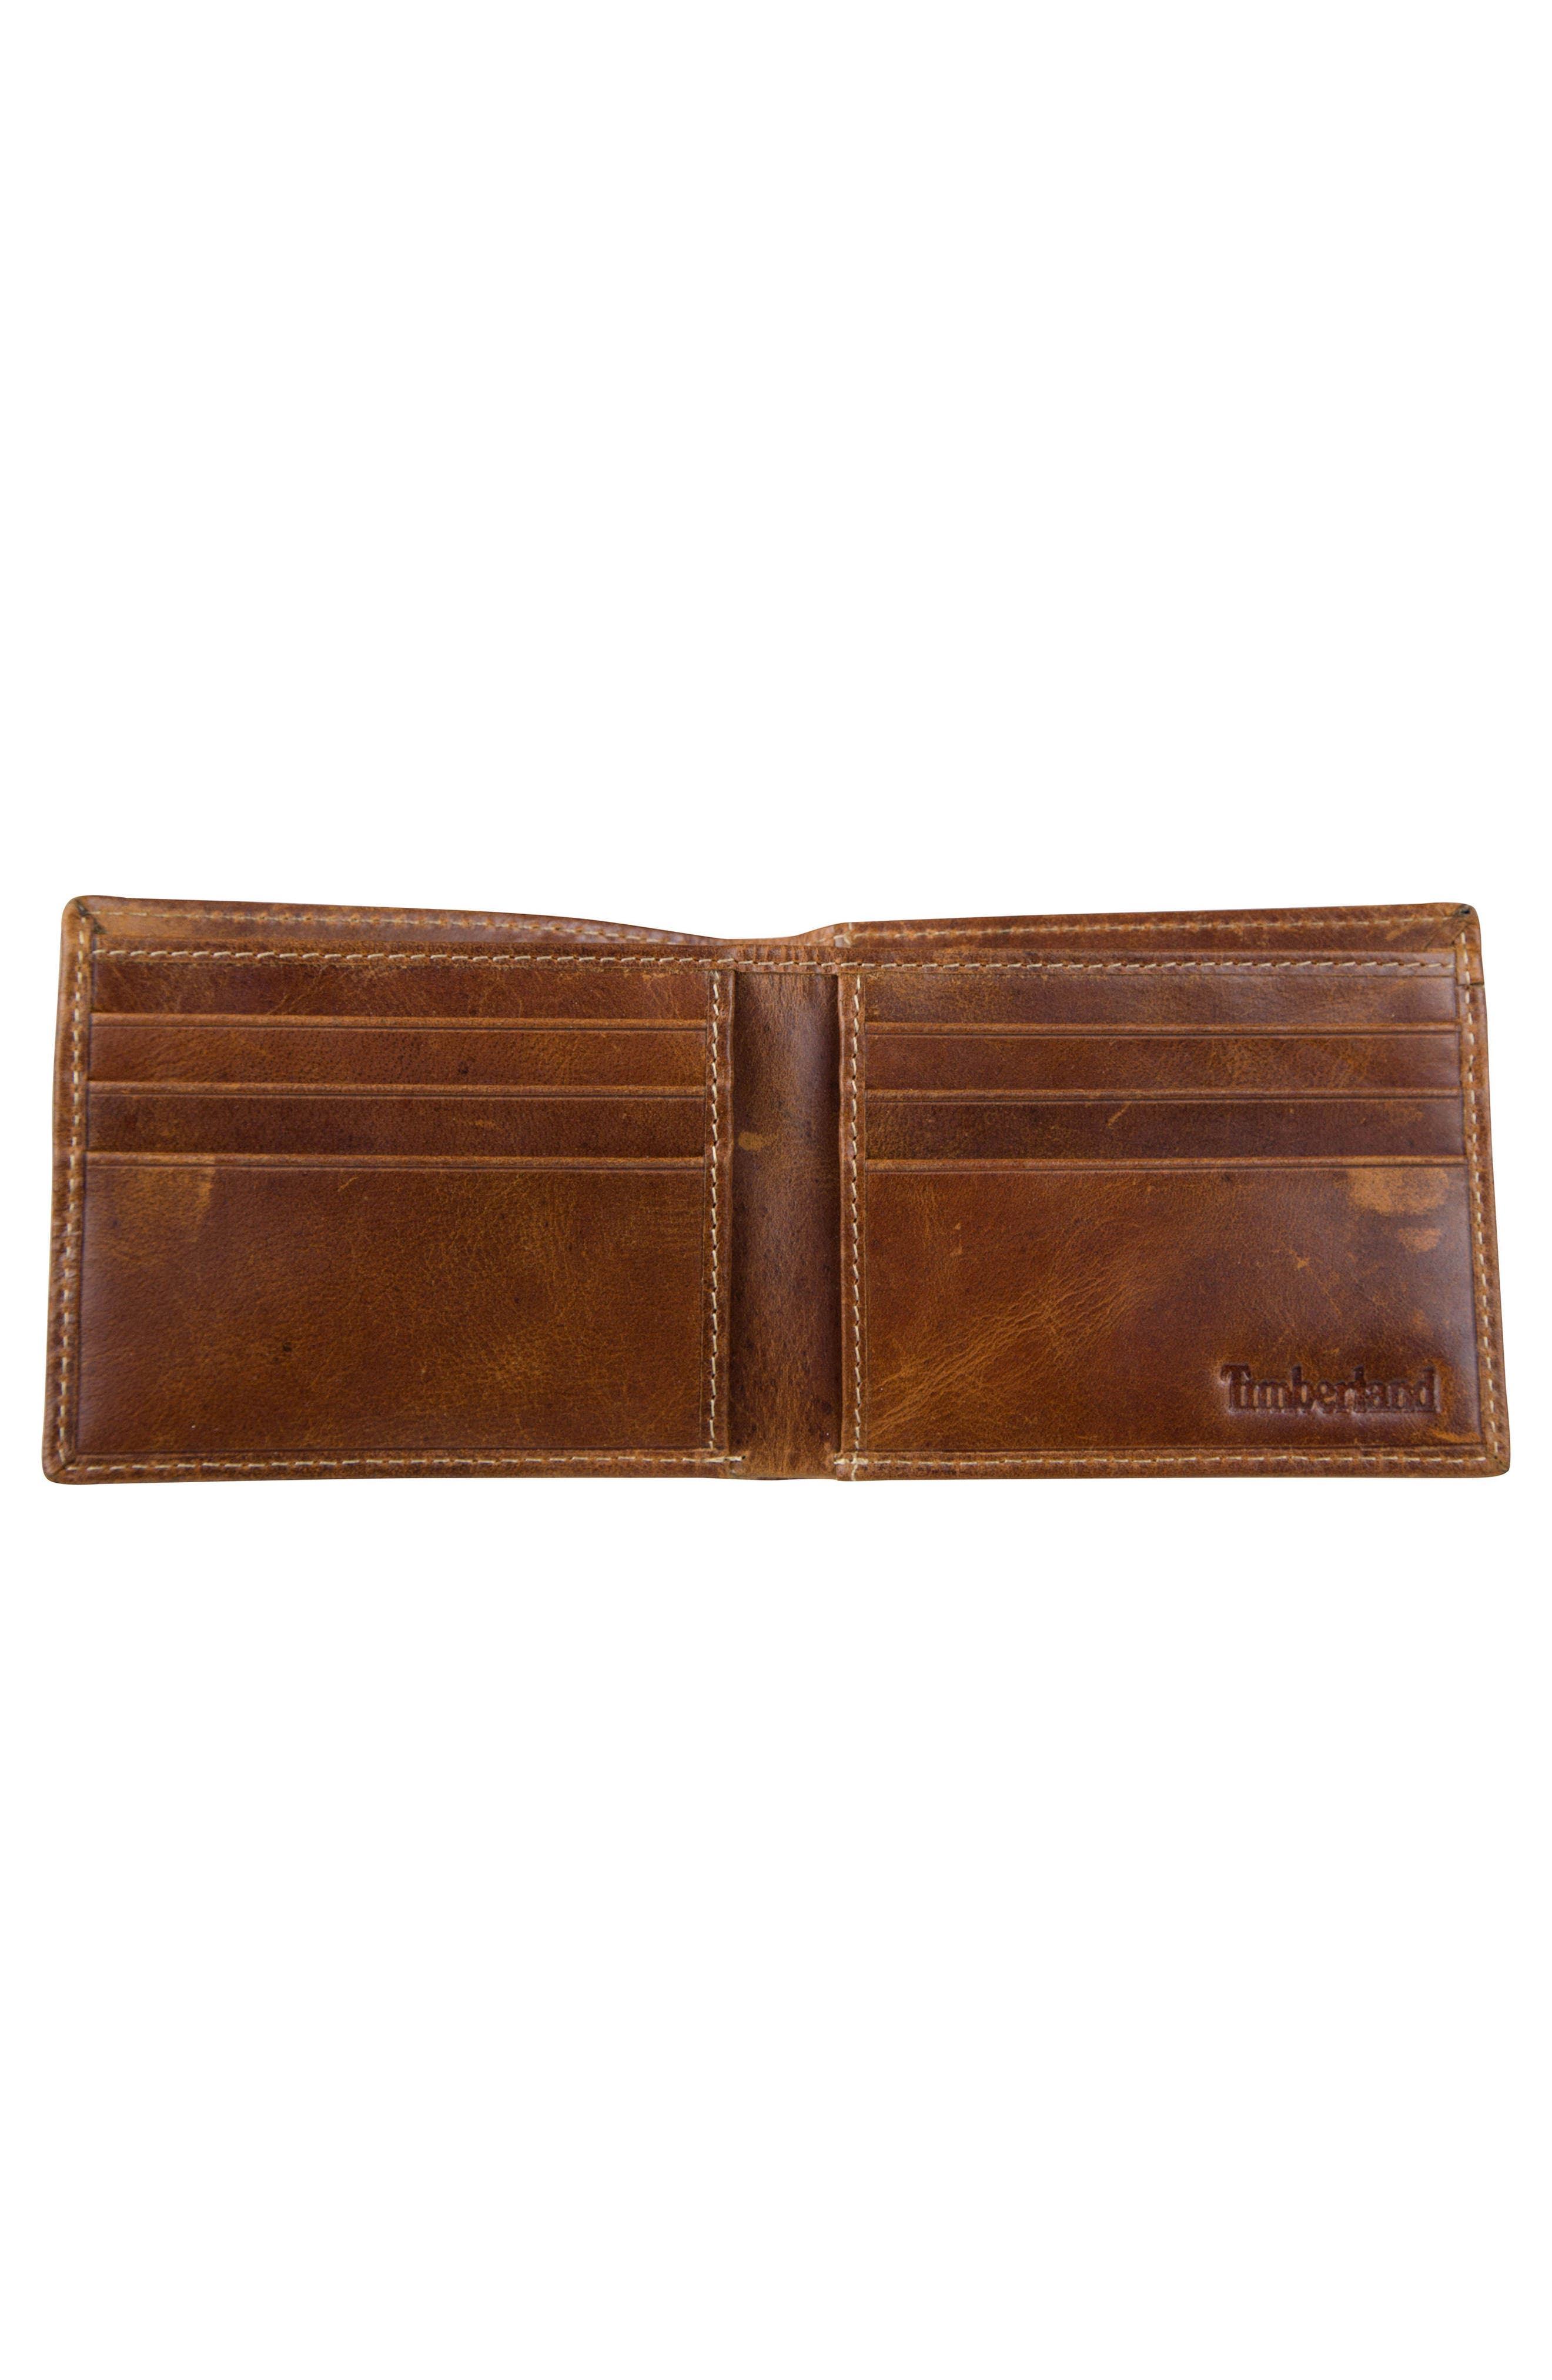 Leather Wallet,                             Alternate thumbnail 2, color,                             202